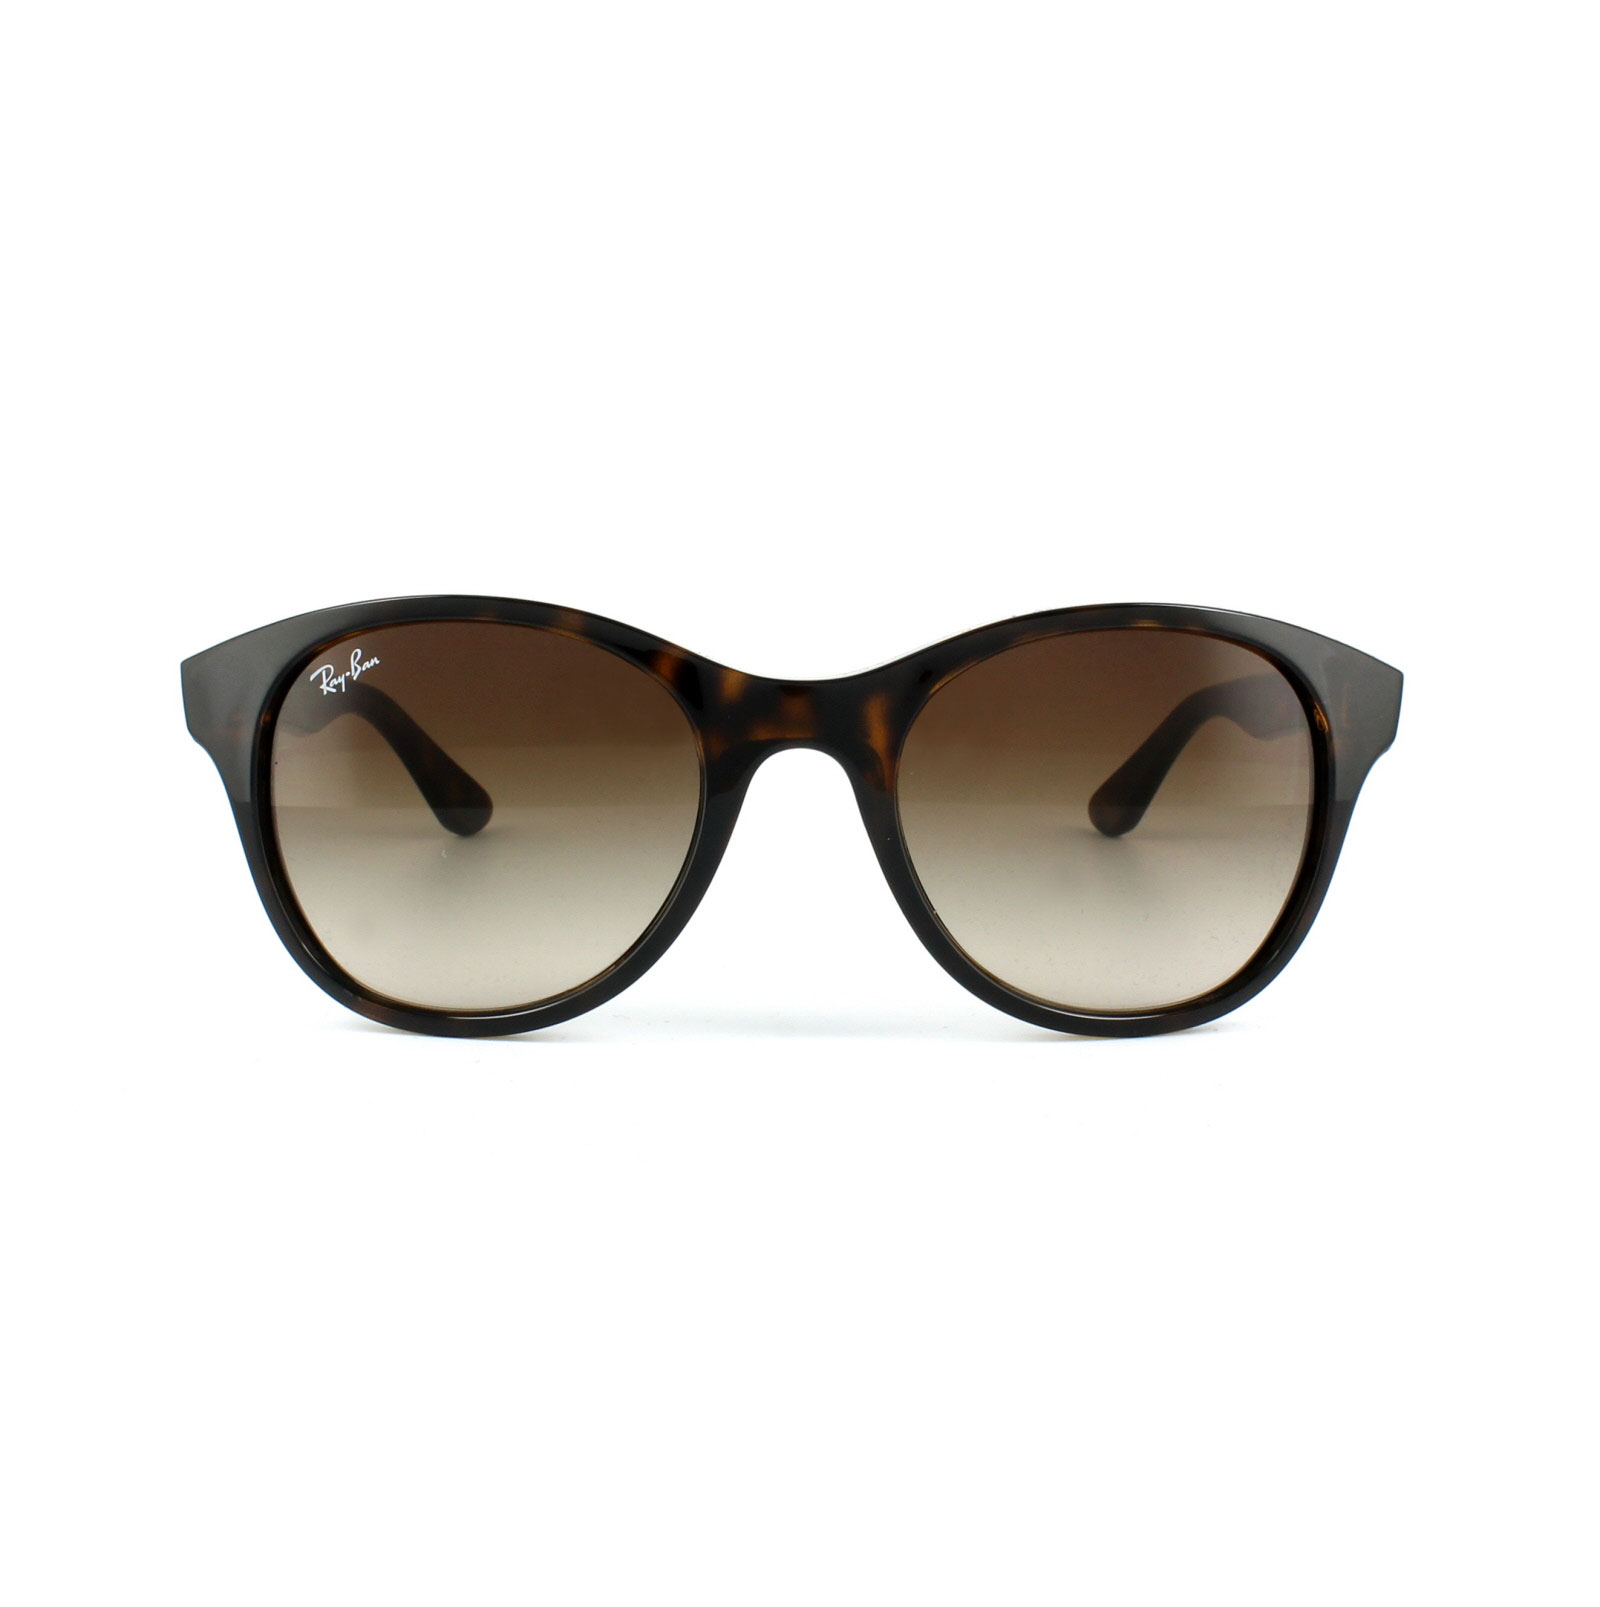 6f5798a615 Ray-Ban Sunglasses 4203 710 13 Havana Brown Gradient 8053672561630 ...